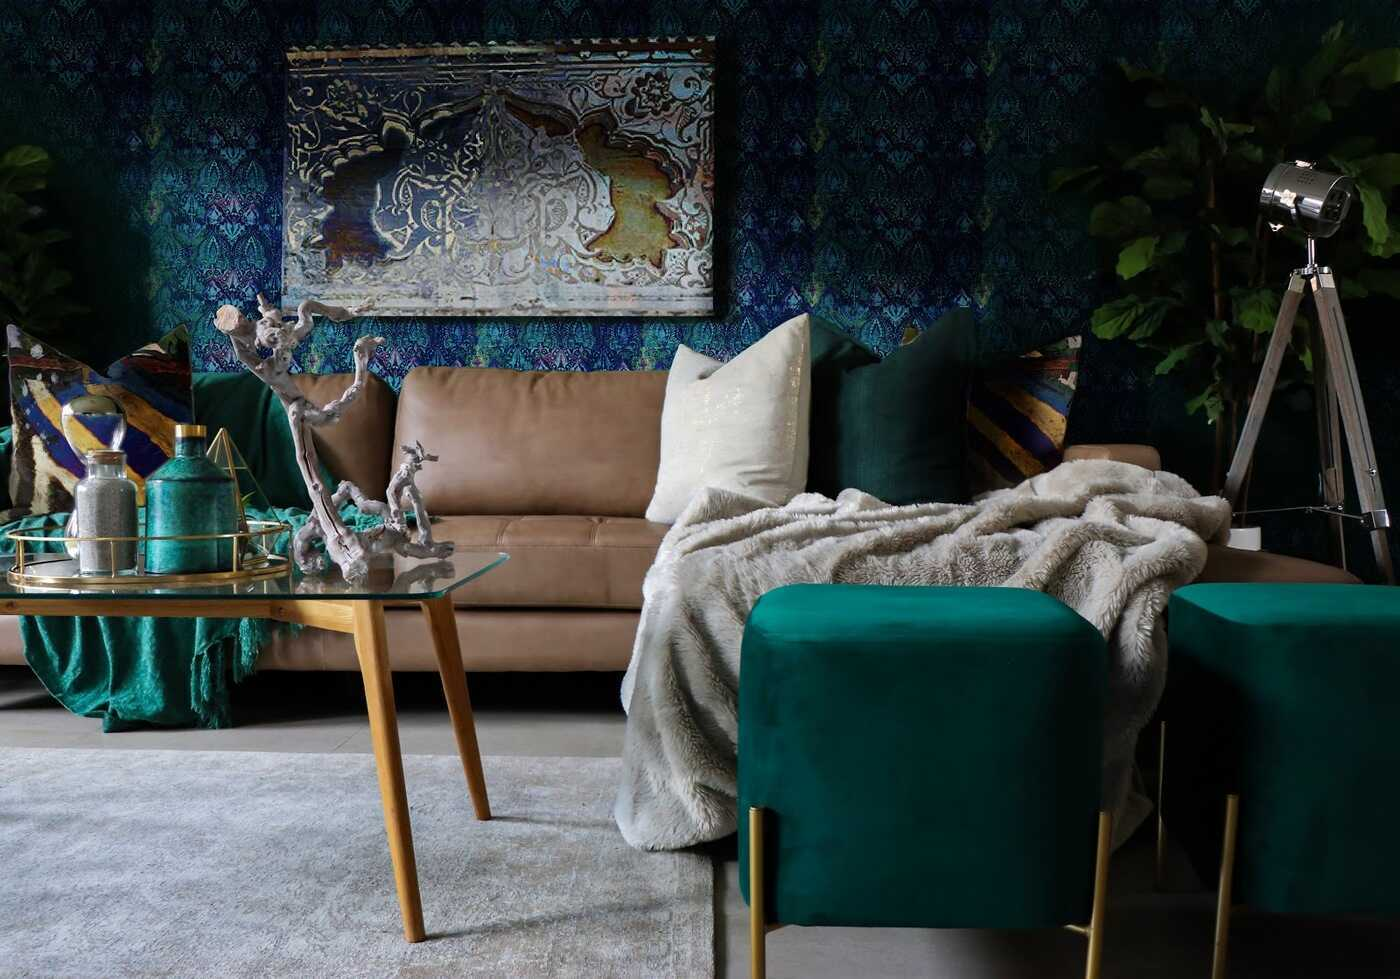 Rooms rich in jewel-tones are topping this season's interior styling. See how to warm up your space with SmithHönig's Neela Blue wallpaper.